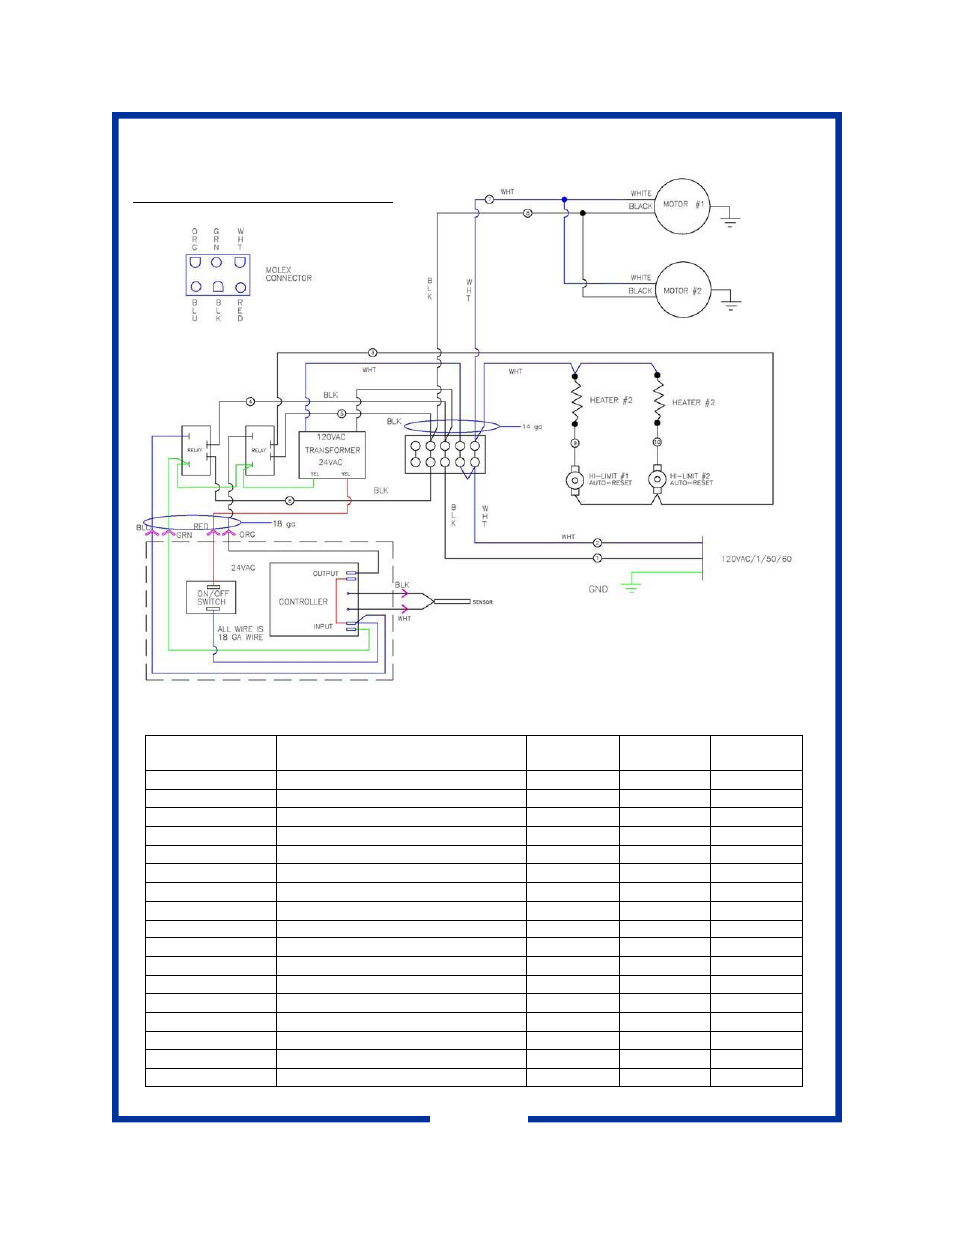 Wiring Diagram Replacement Parts Pitco Frialator Pcf18 User 24vac Manual Page 8 10